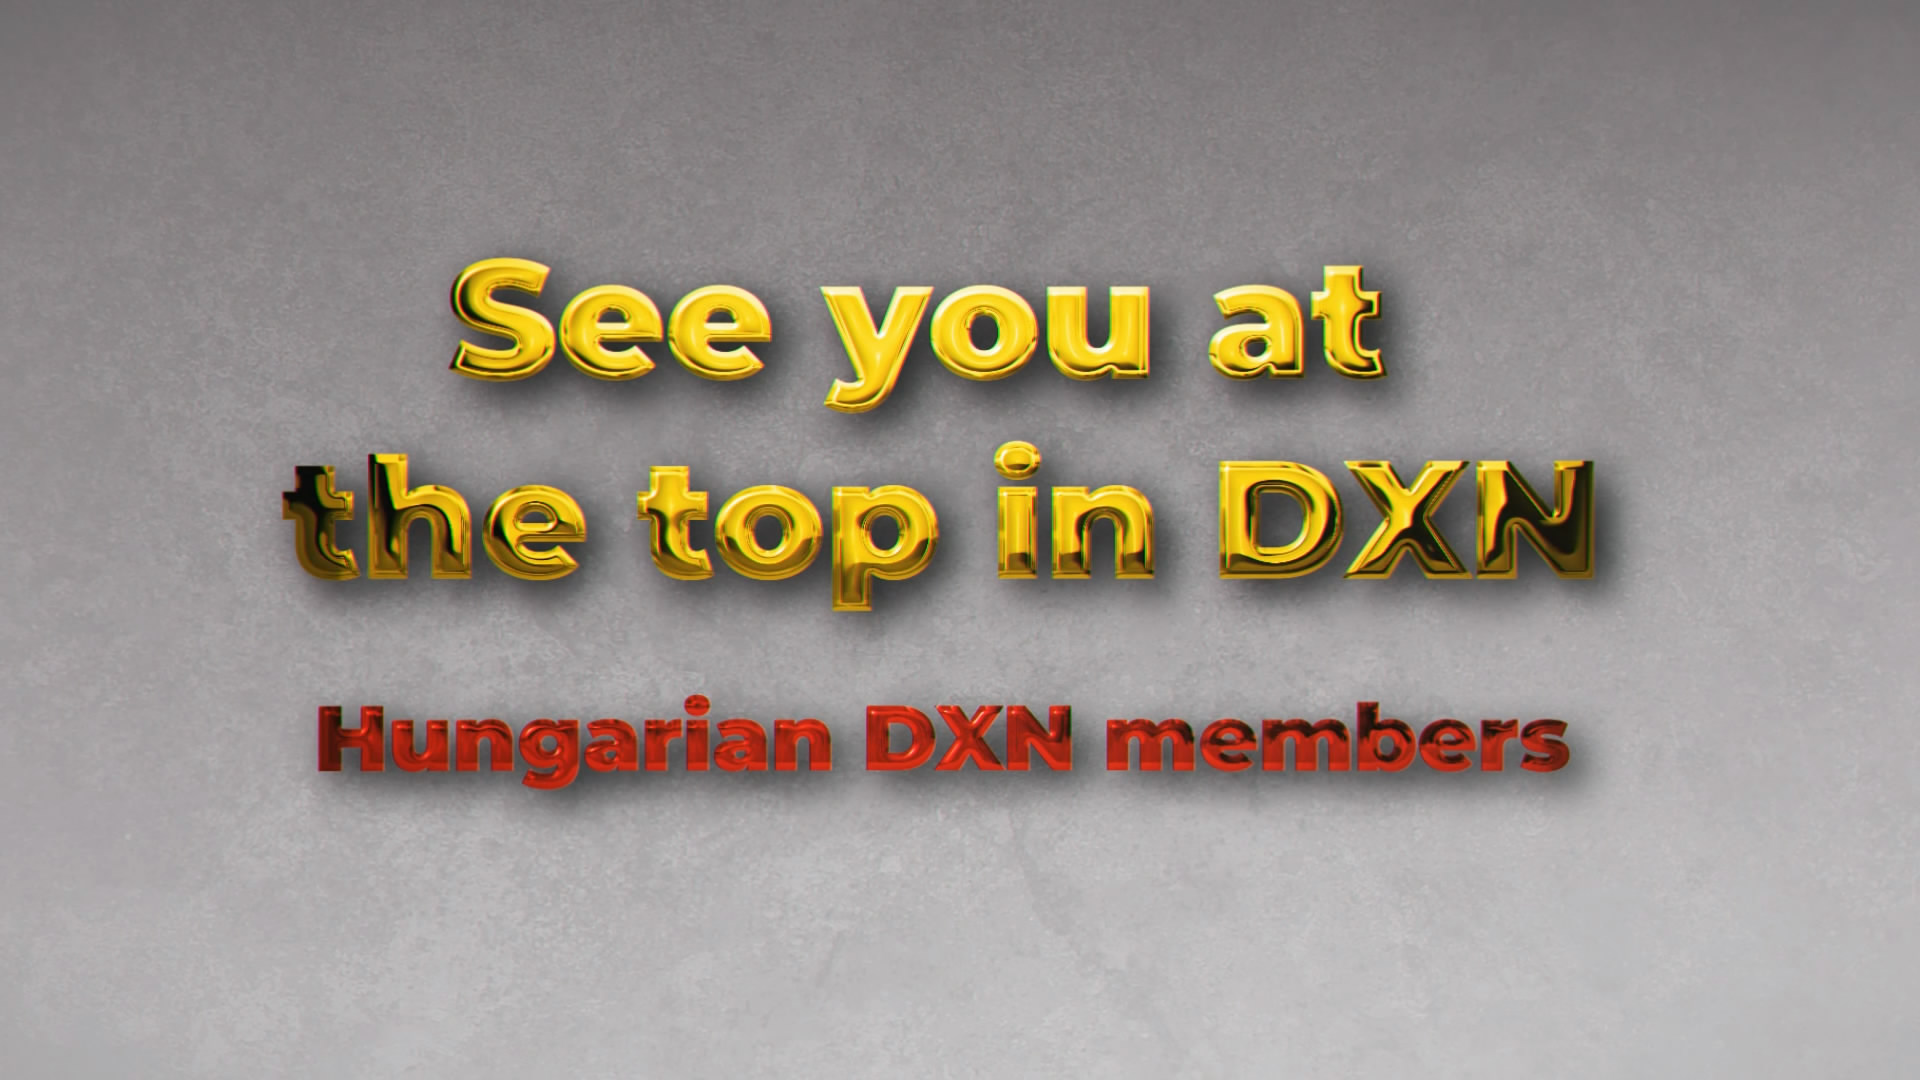 See you at the top in DXN!